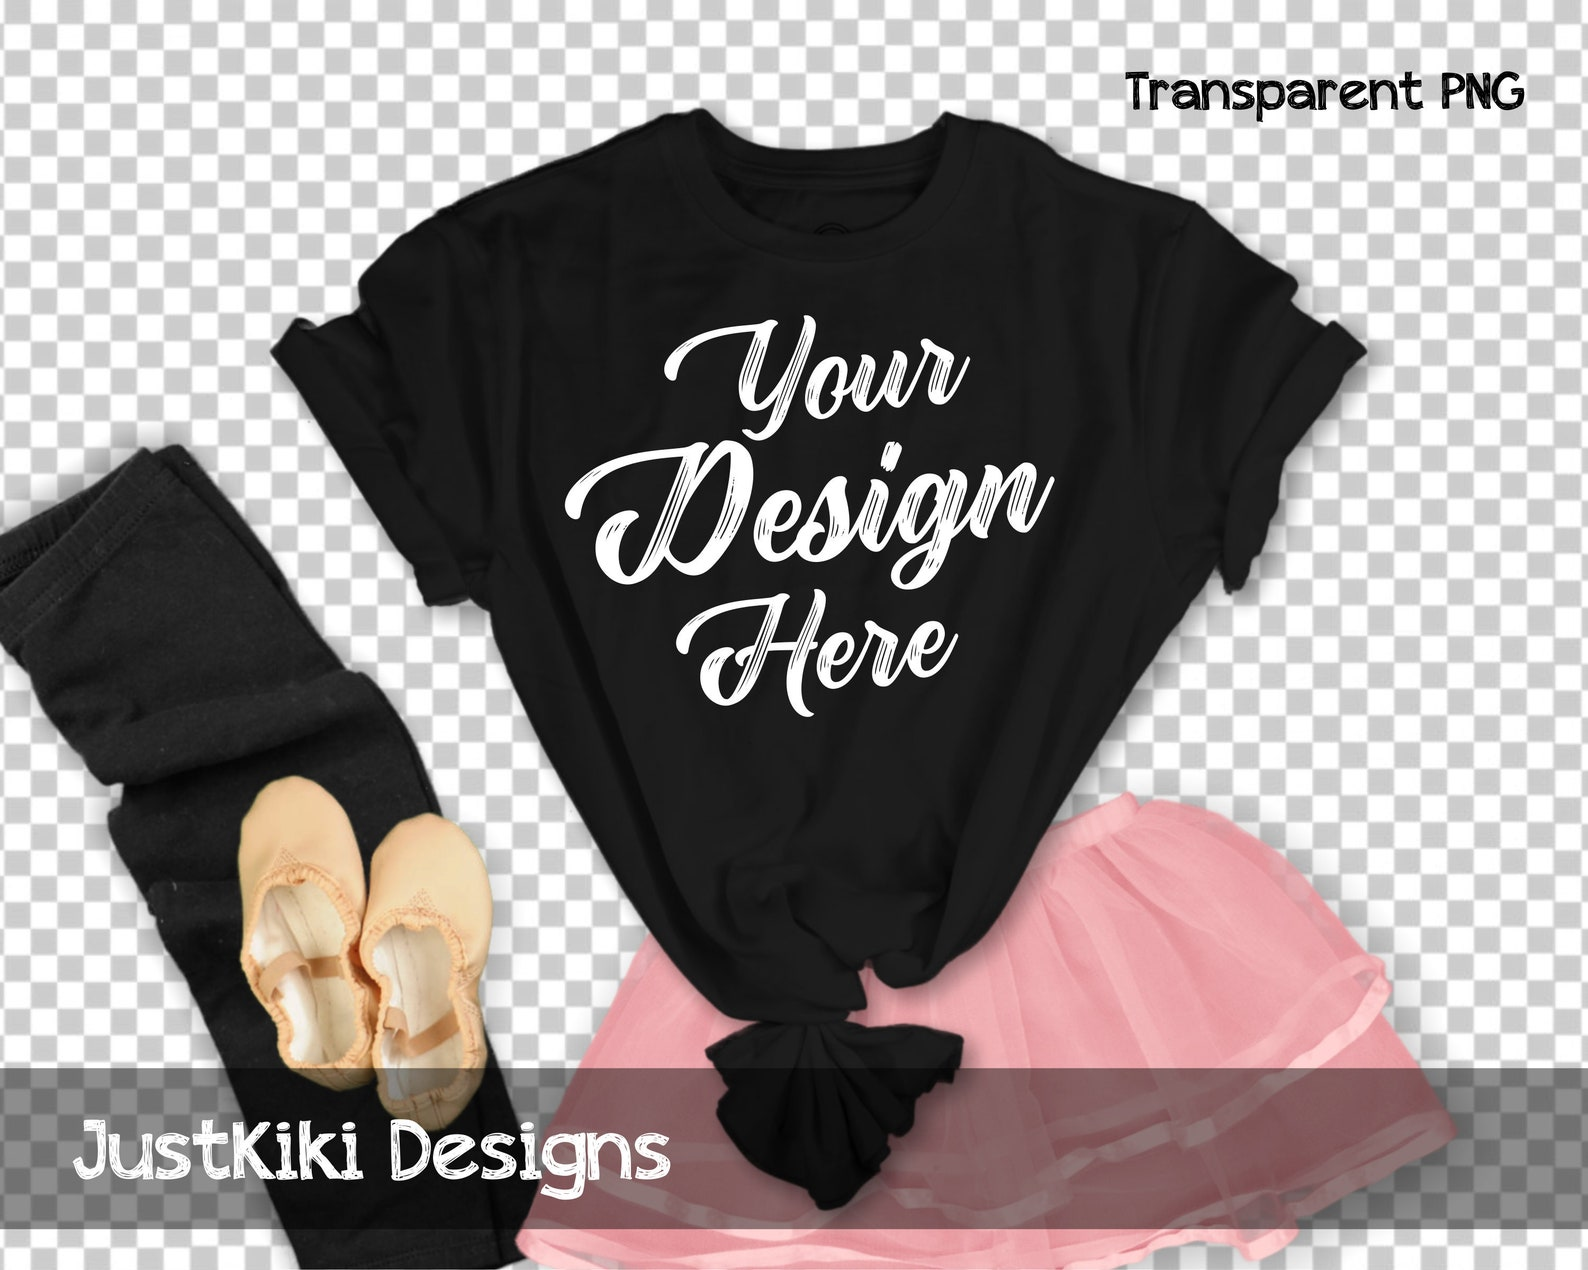 black t shirt mockup - shirt flat lay - shirt mock up - transparent background pink ballet skirt and ballet shoes